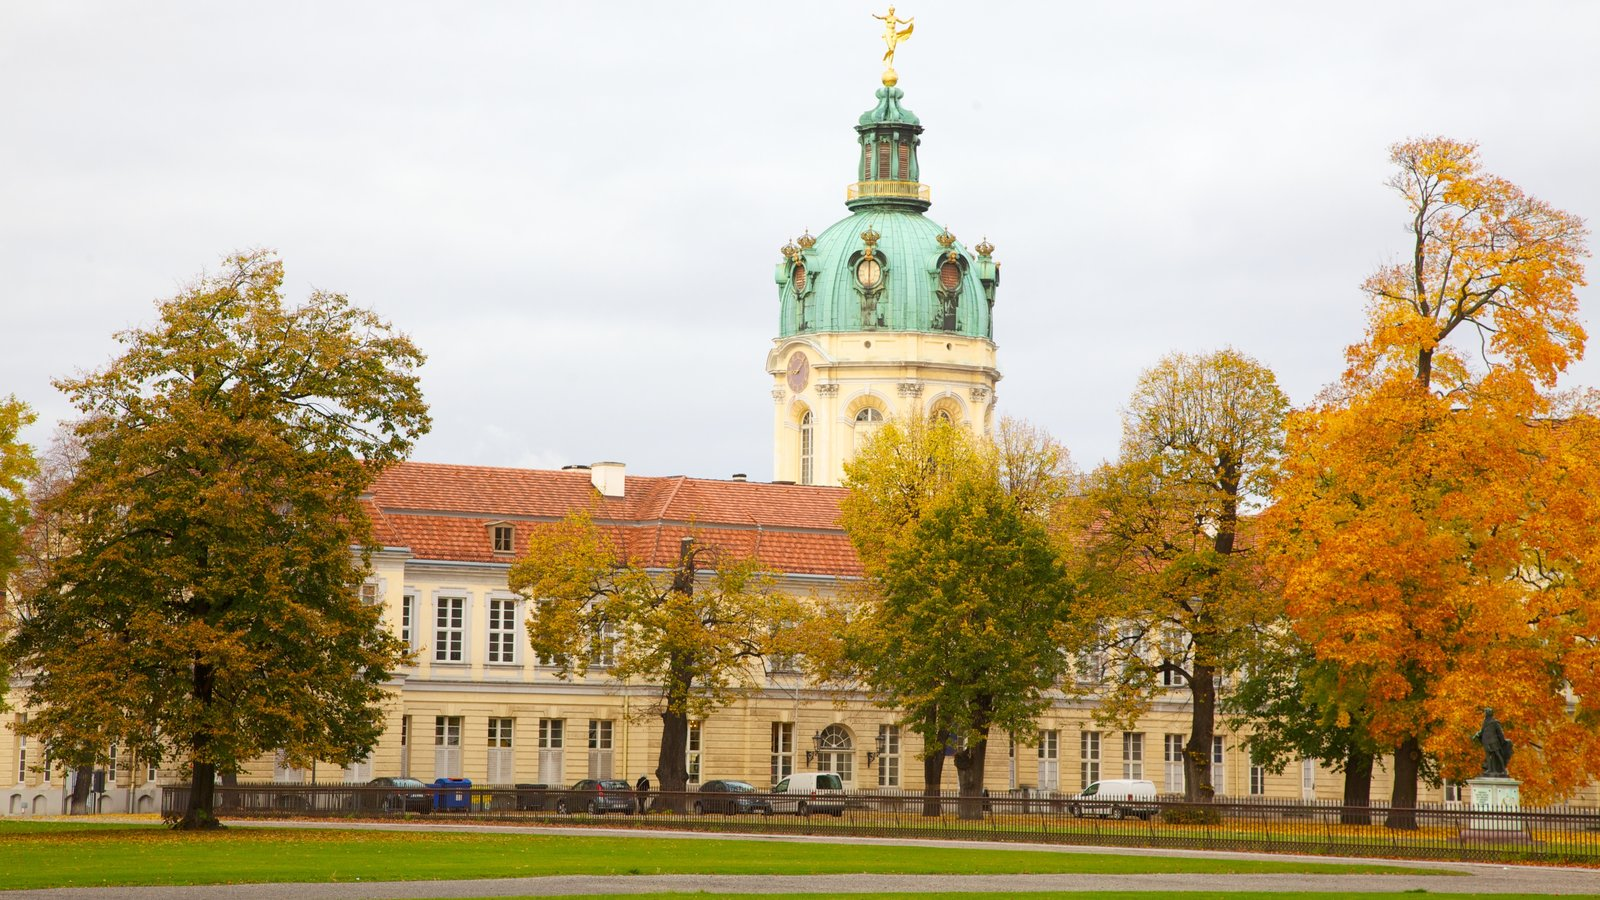 Schloss Charlottenburg featuring a castle, heritage architecture and autumn leaves